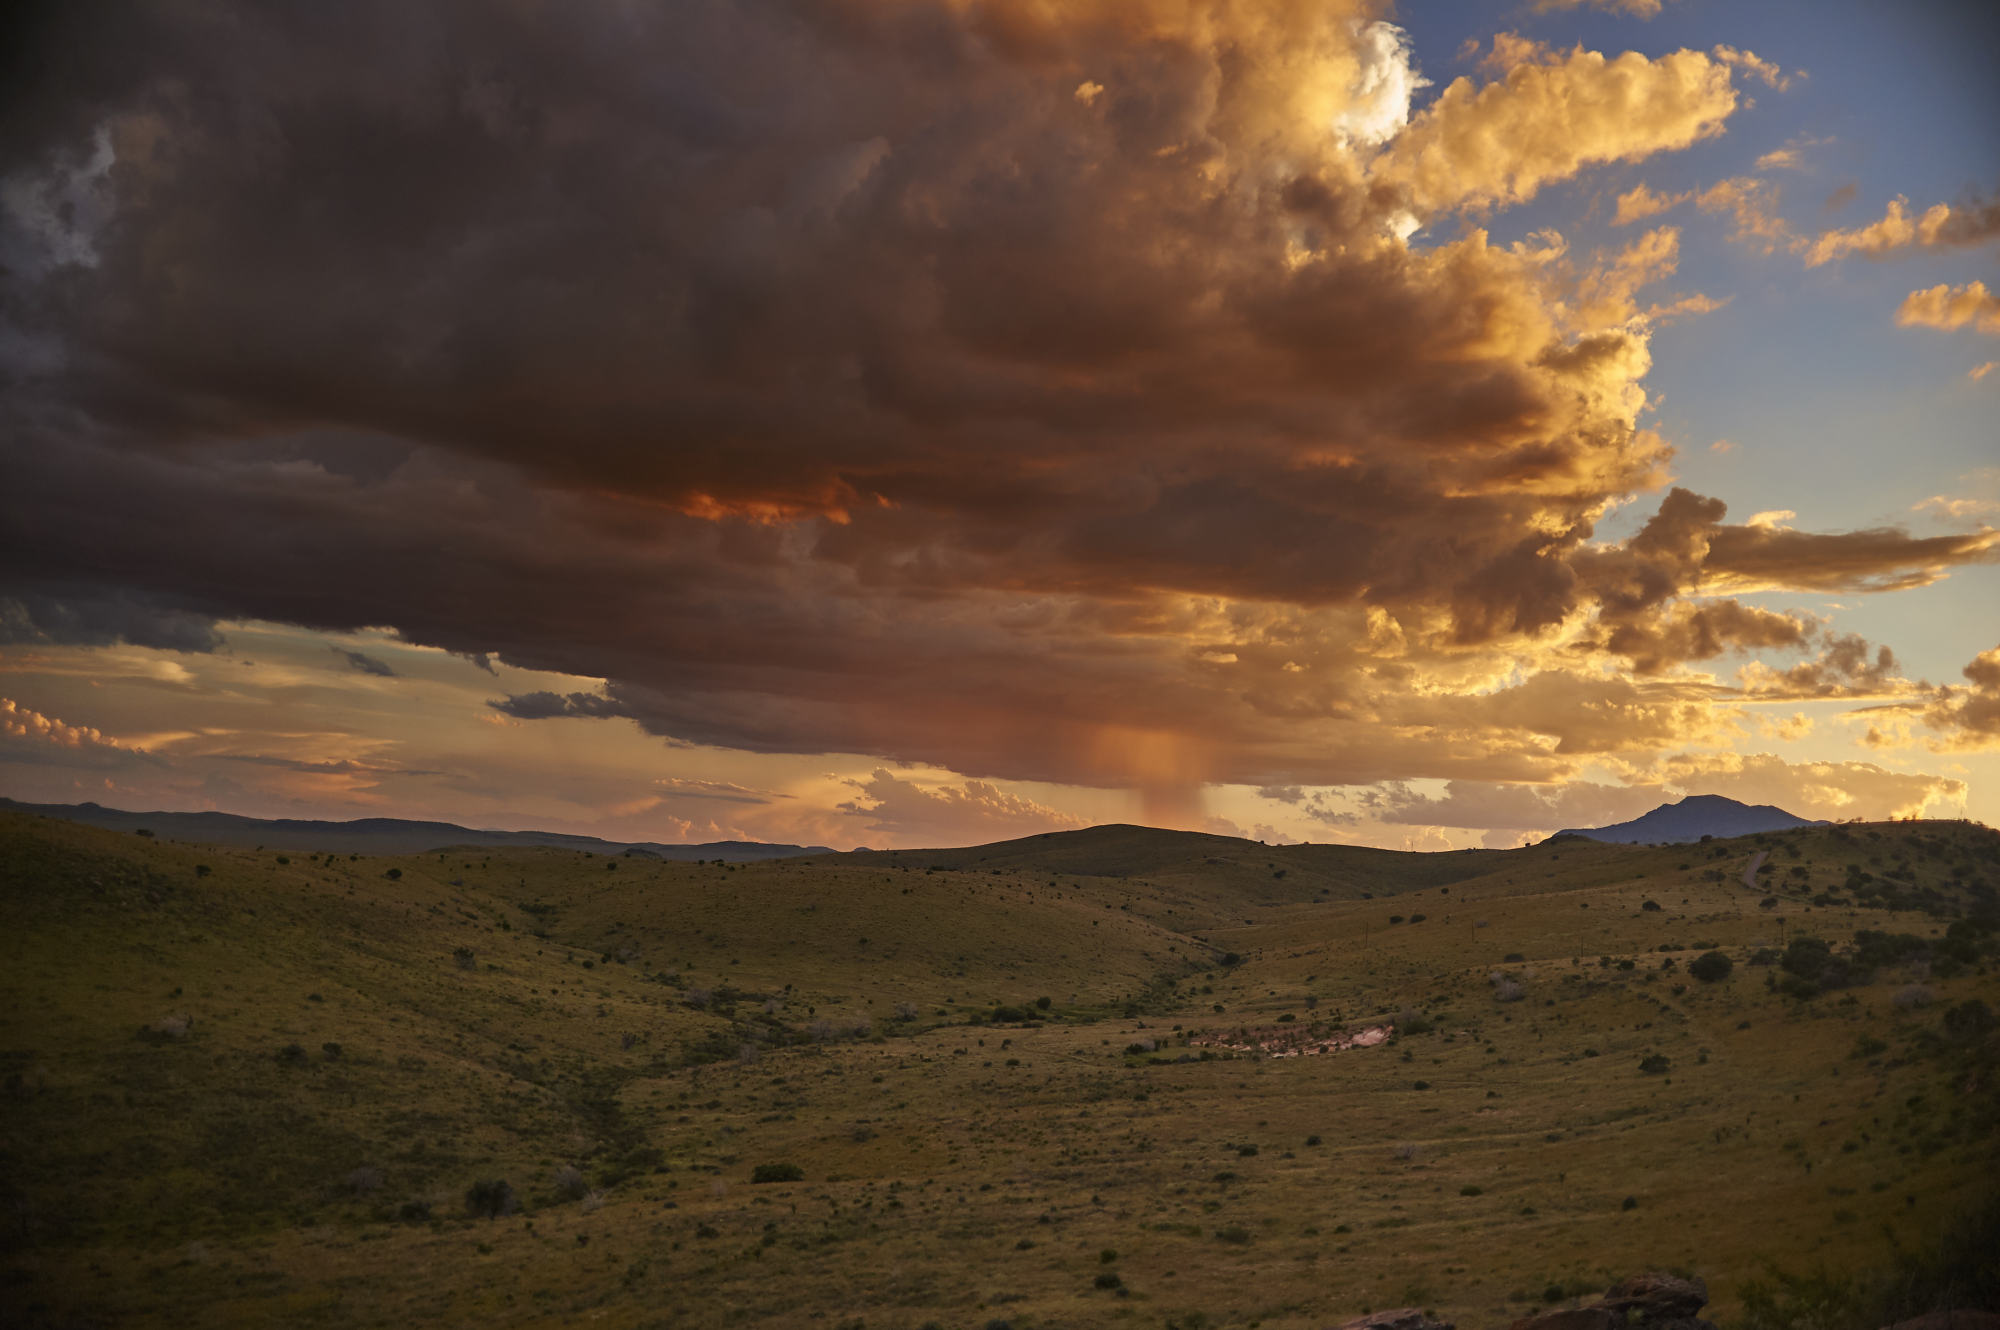 Thunderstorms at sunset from Skyline Drive at Davis Mountains State Park